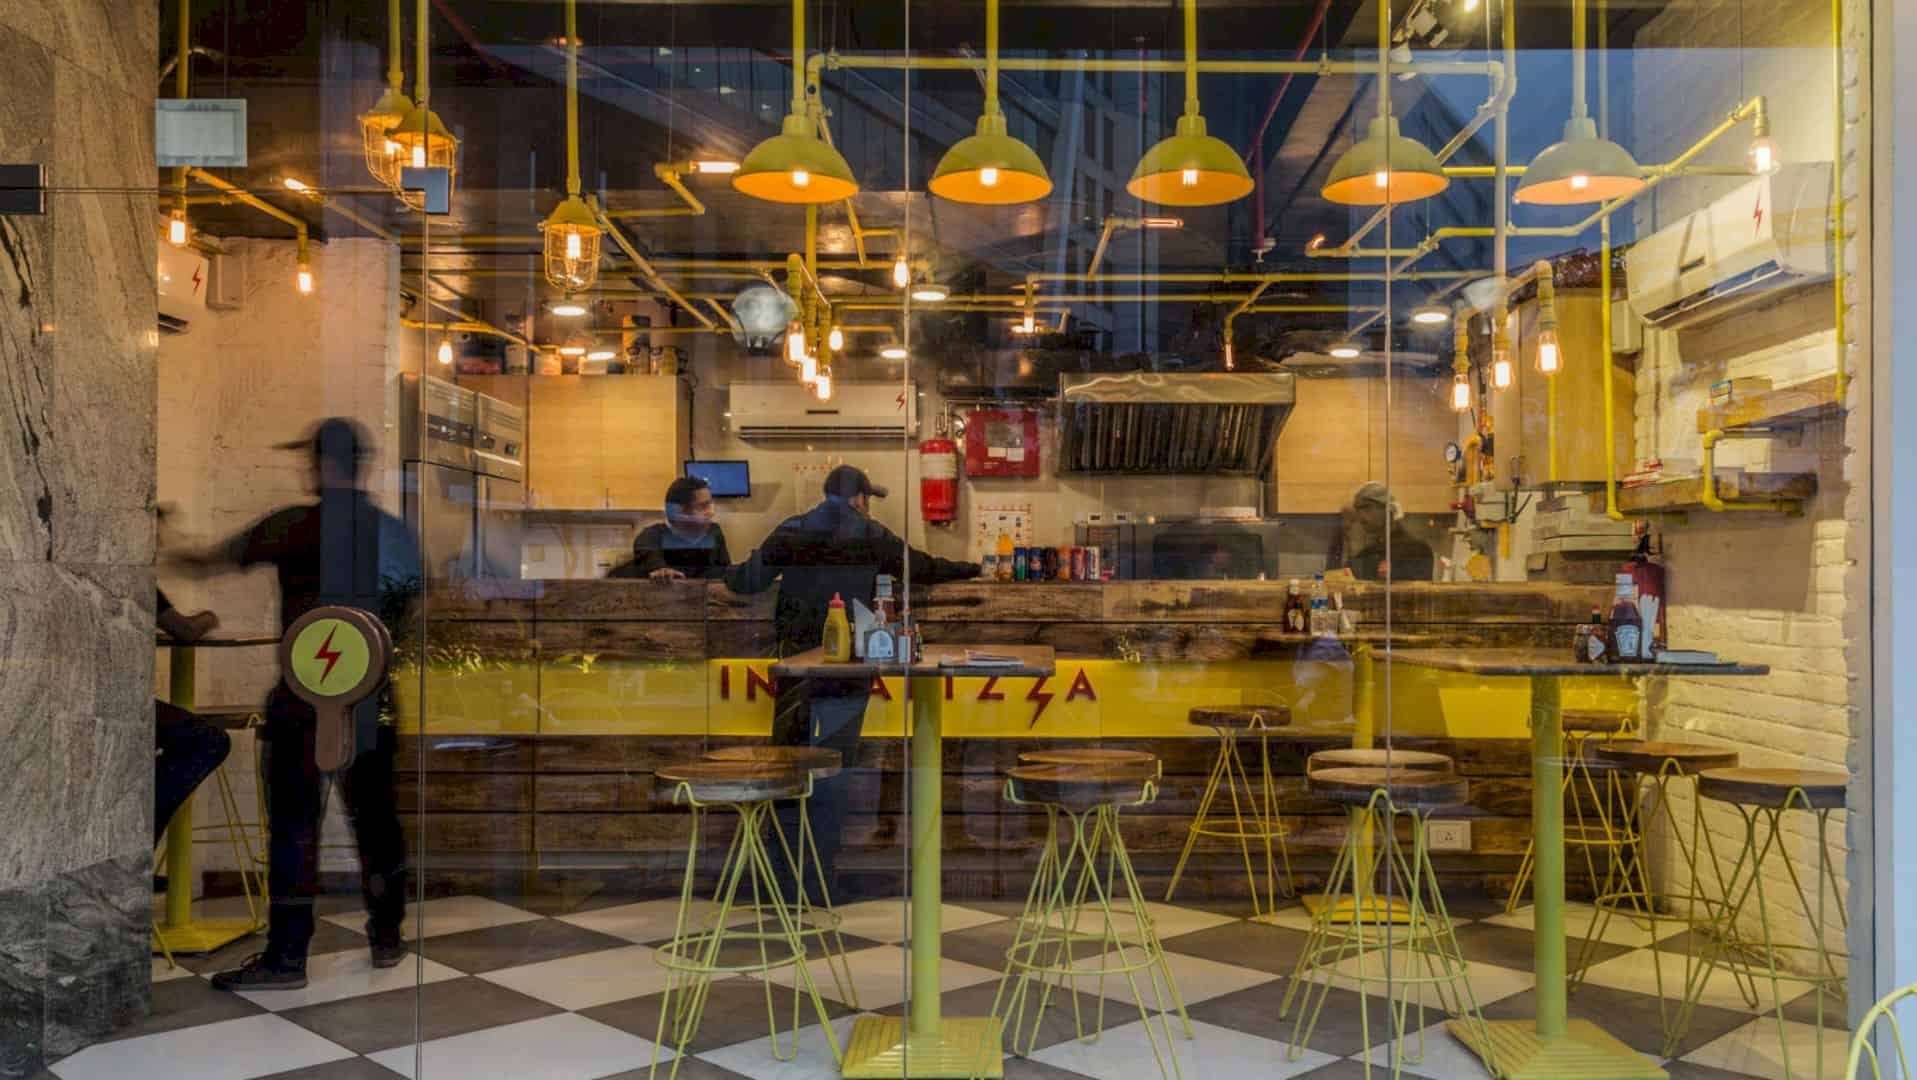 The Instapizza II: A New Branch with An Industrial Interior Design and Interesting Lighting